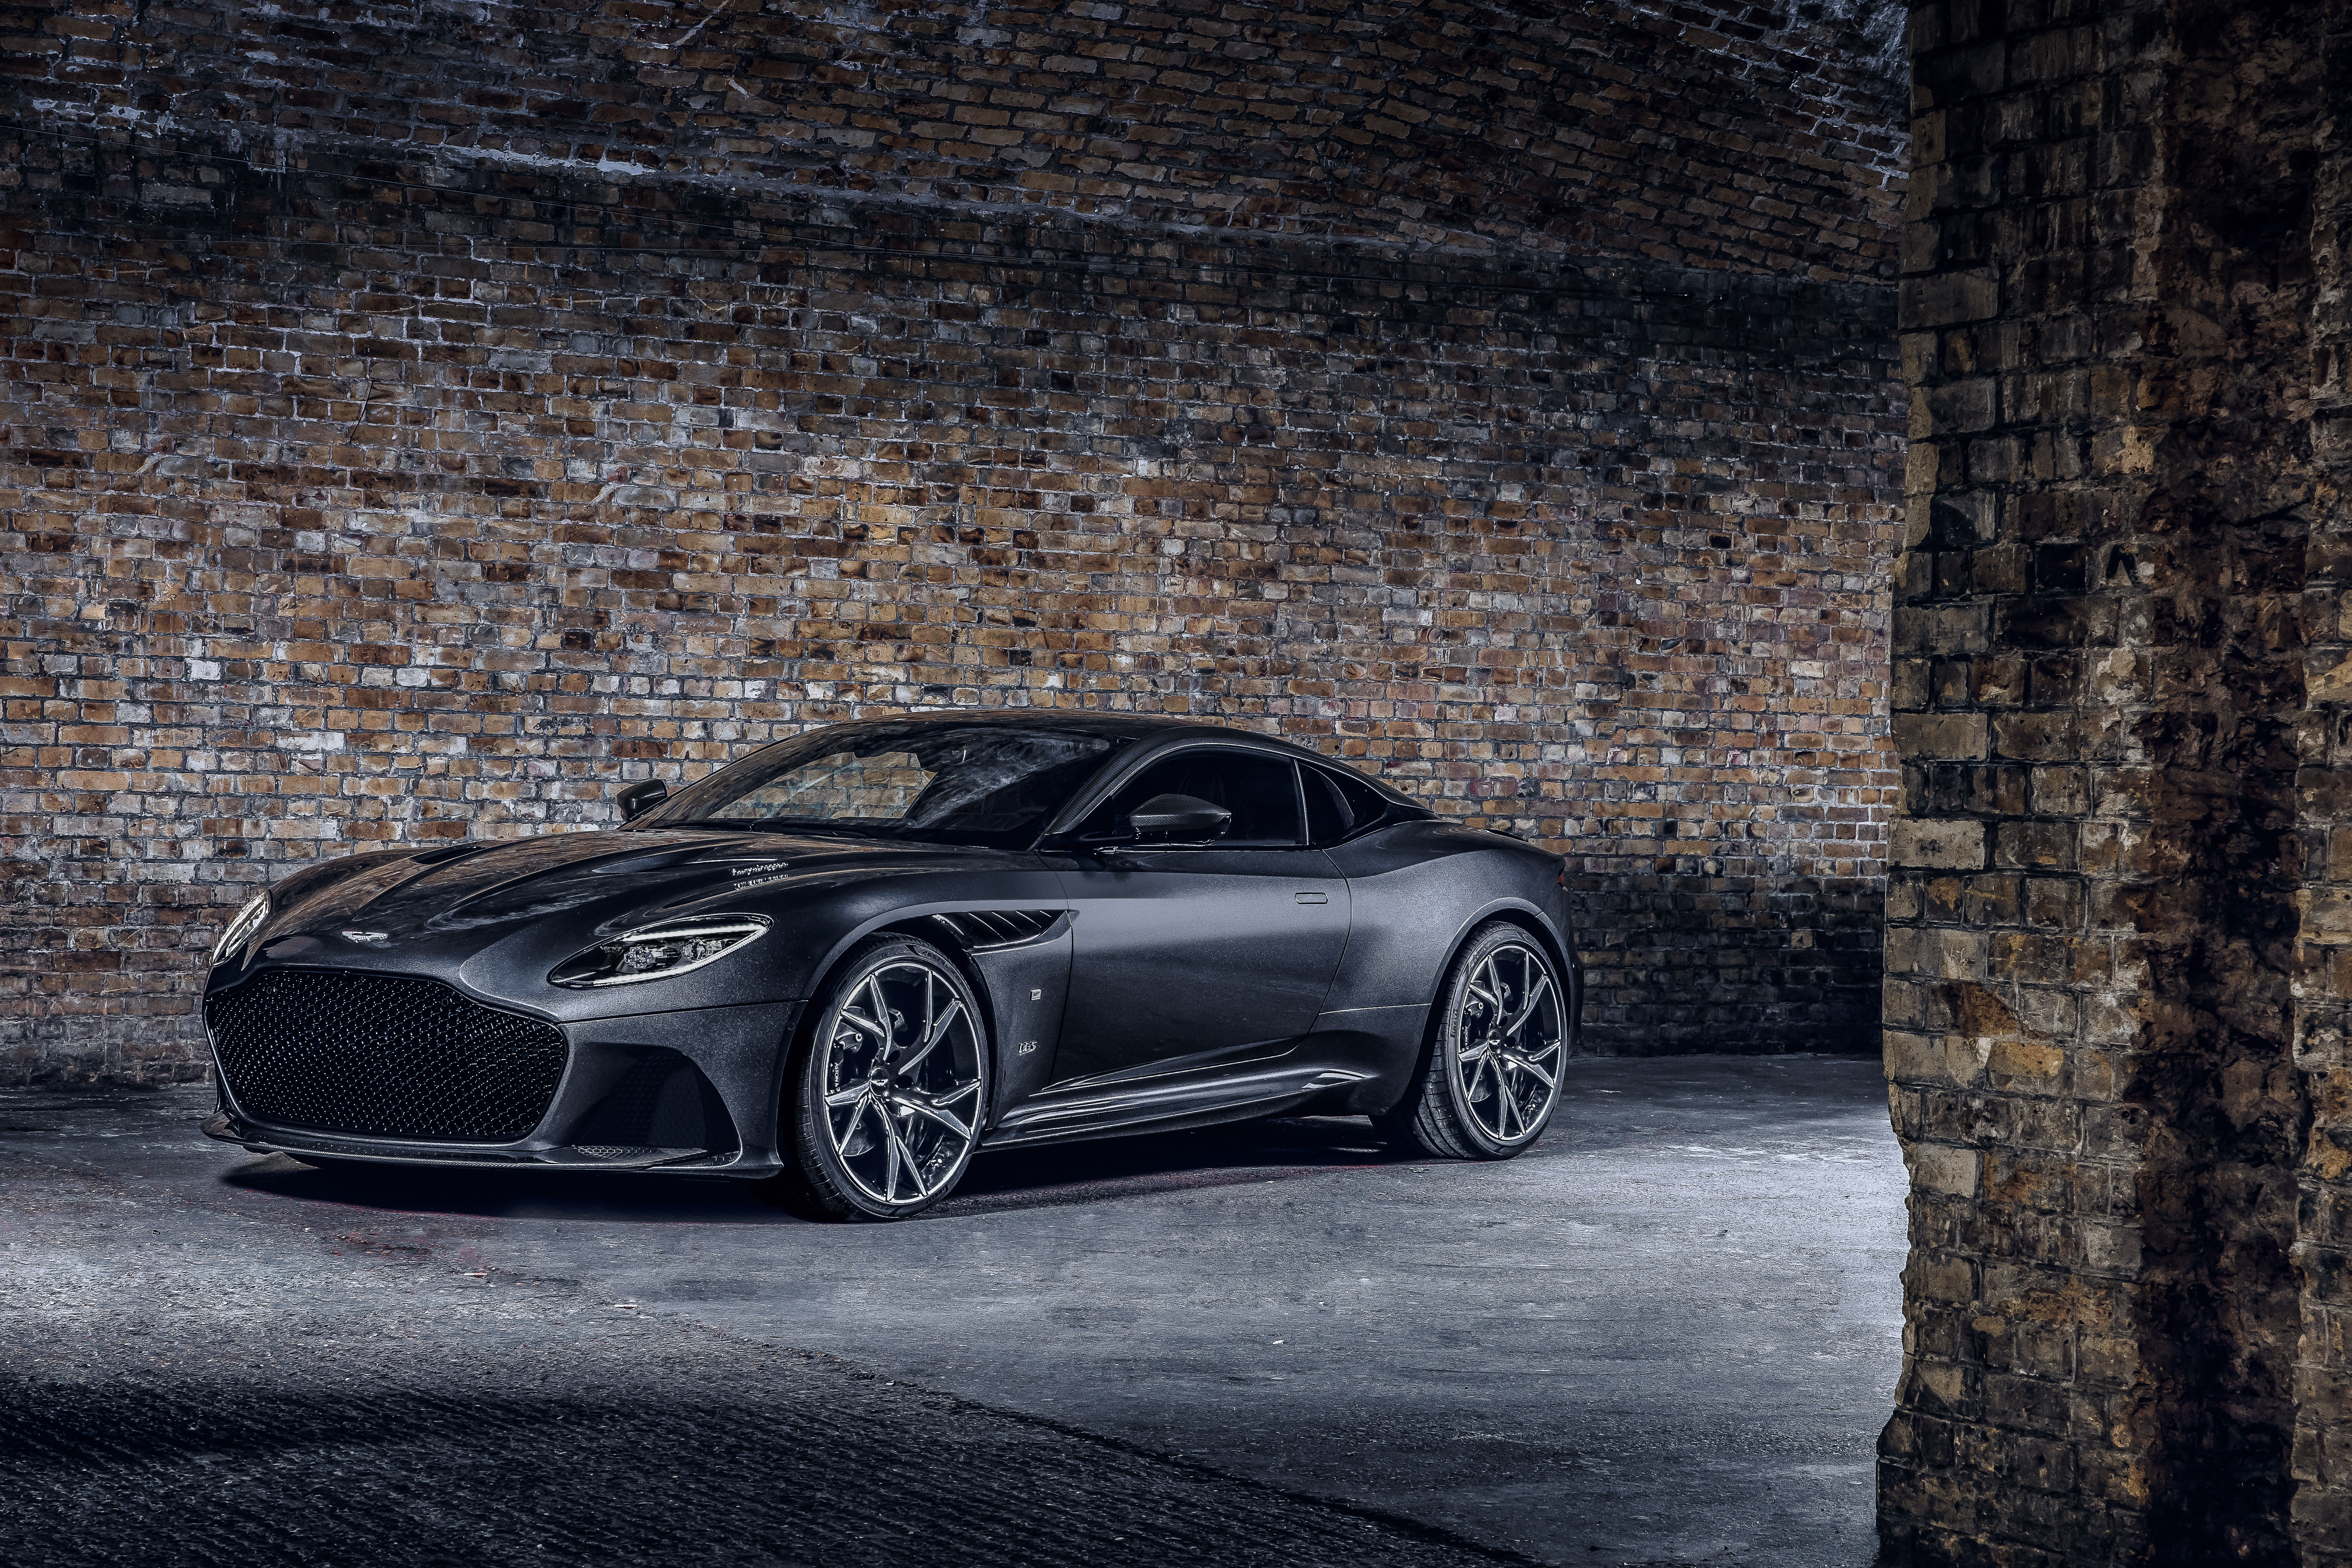 2020 Aston Martin Dbs Superleggera 007 Edition Hd Cars 4k Wallpapers Images Backgrounds Photos And Pictures